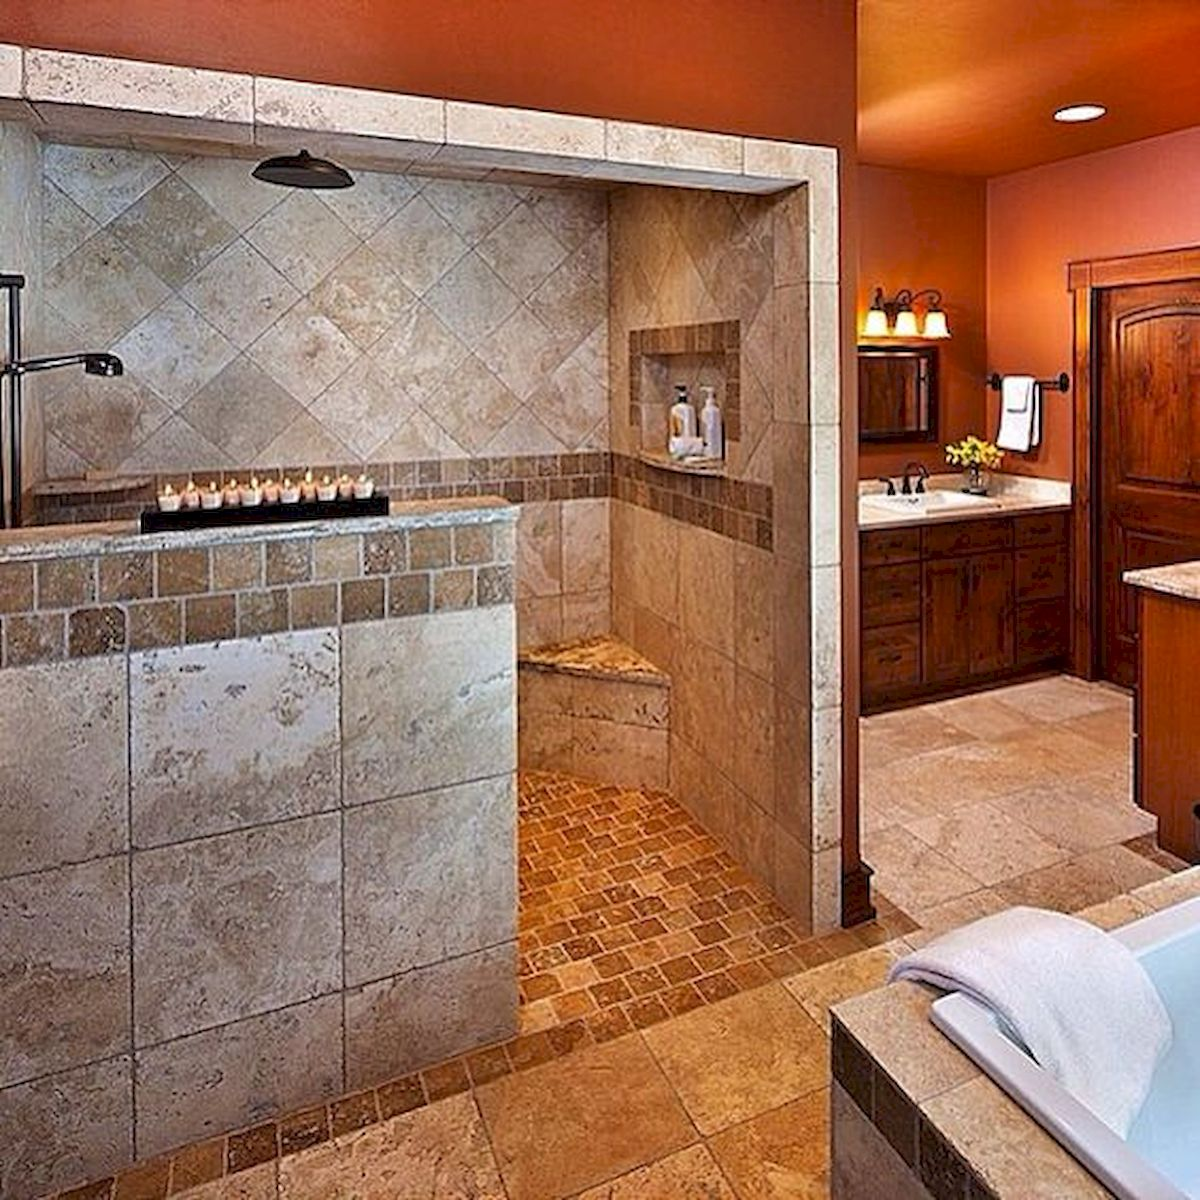 50 Fantastic Walk In Shower No Door for Bathroom Ideas   Ideaboz